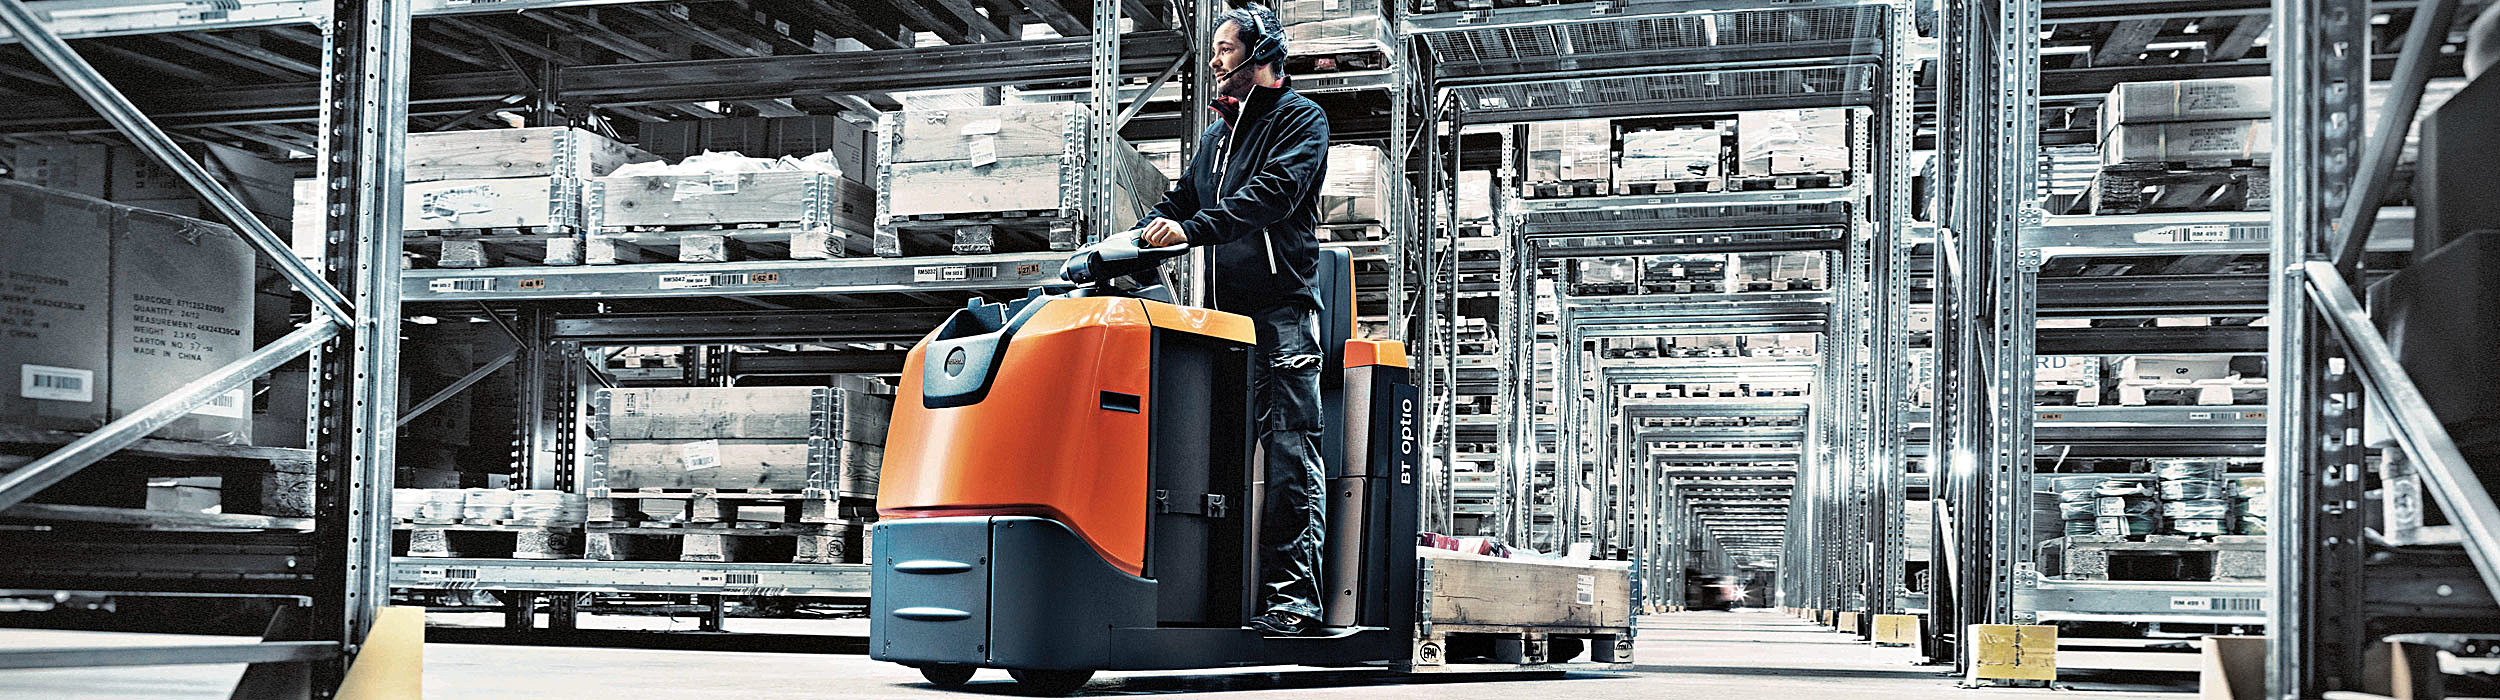 From the universal hand pallet truck to larger forklifts or automated solutions.